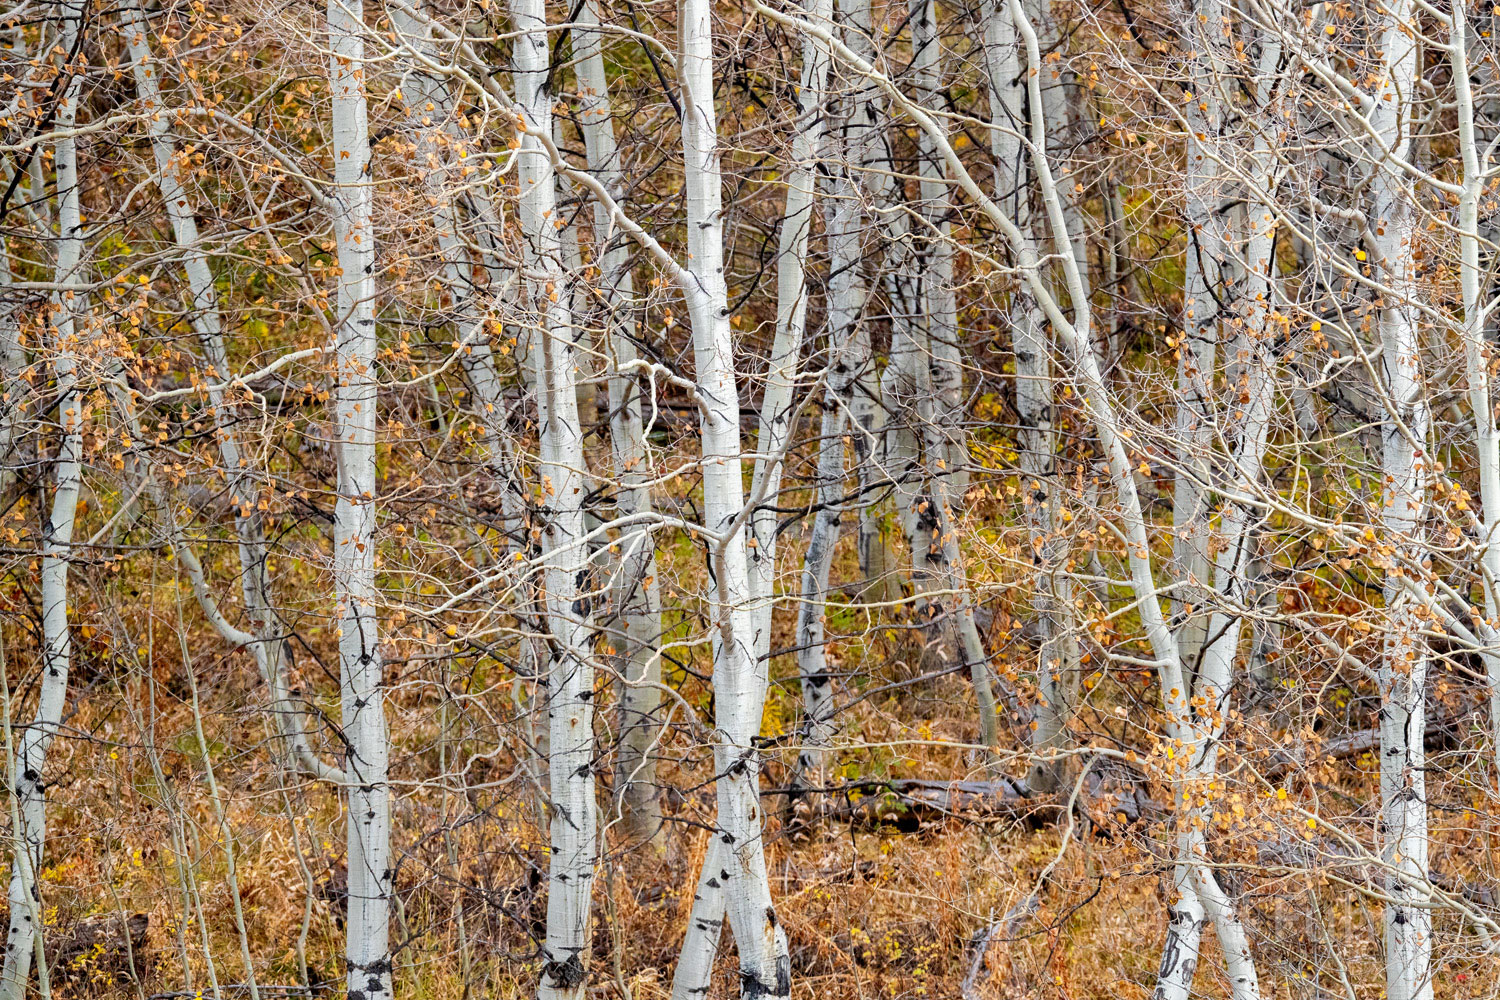 A few final fading leaves of fall cling in this grove of aspens.